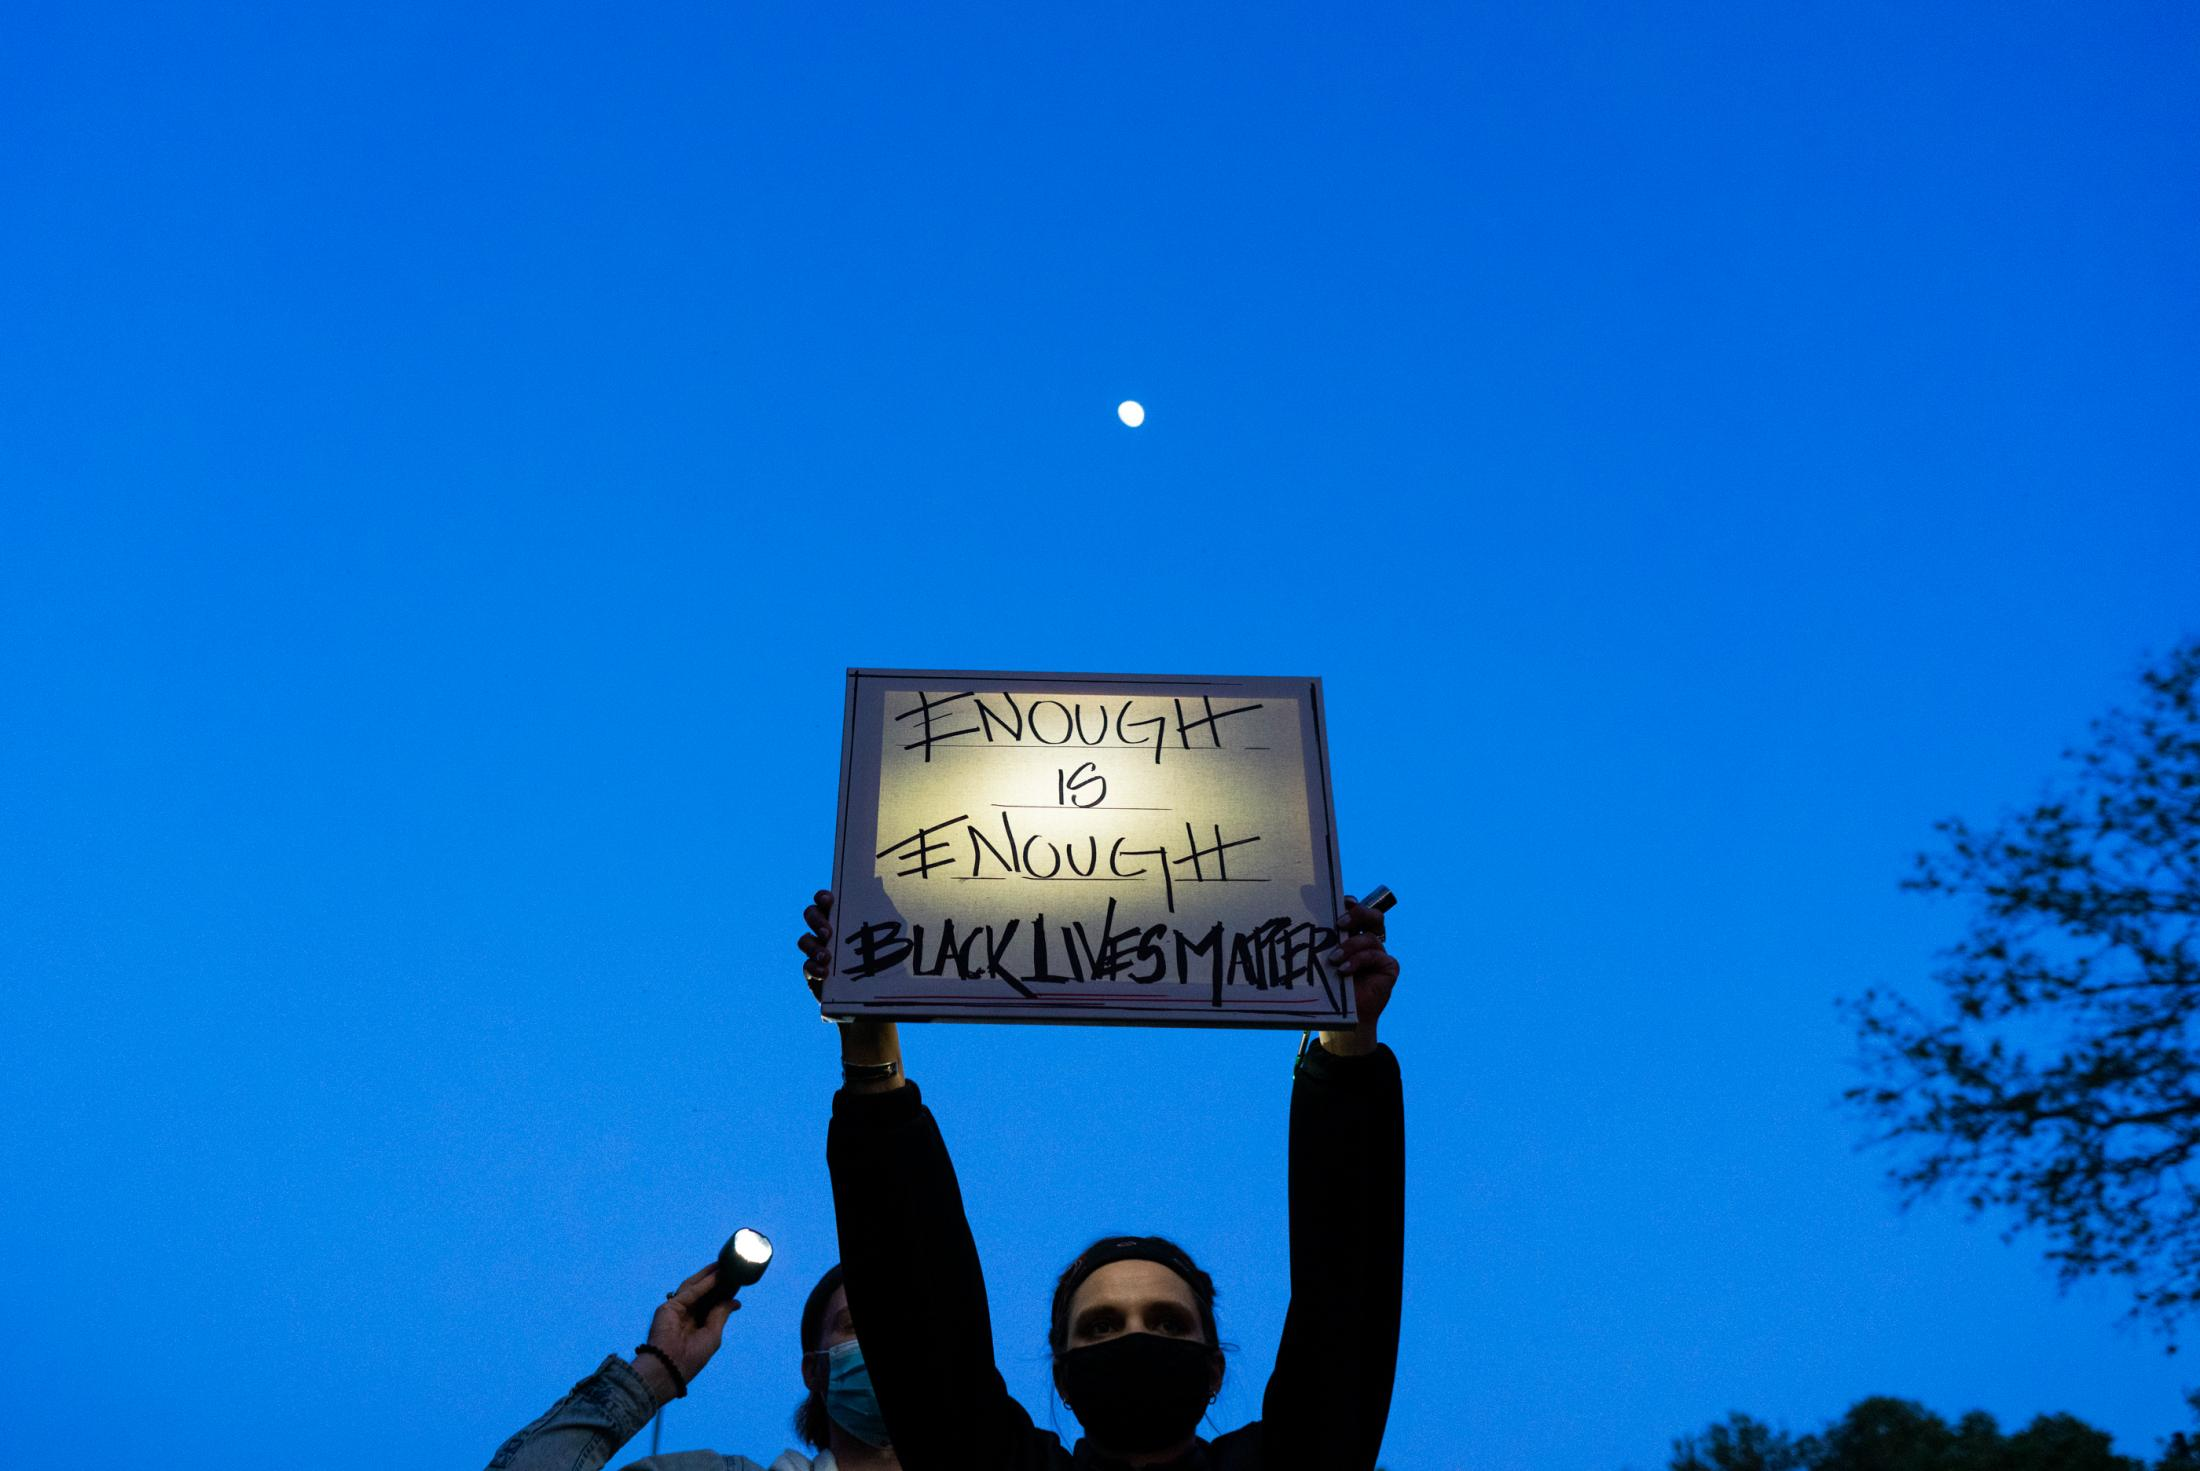 A vigil attendee holds a Black Lives Matter sign during a peaceful vigil for George Floyd on Monday, June 2020 in Astoria, New York.